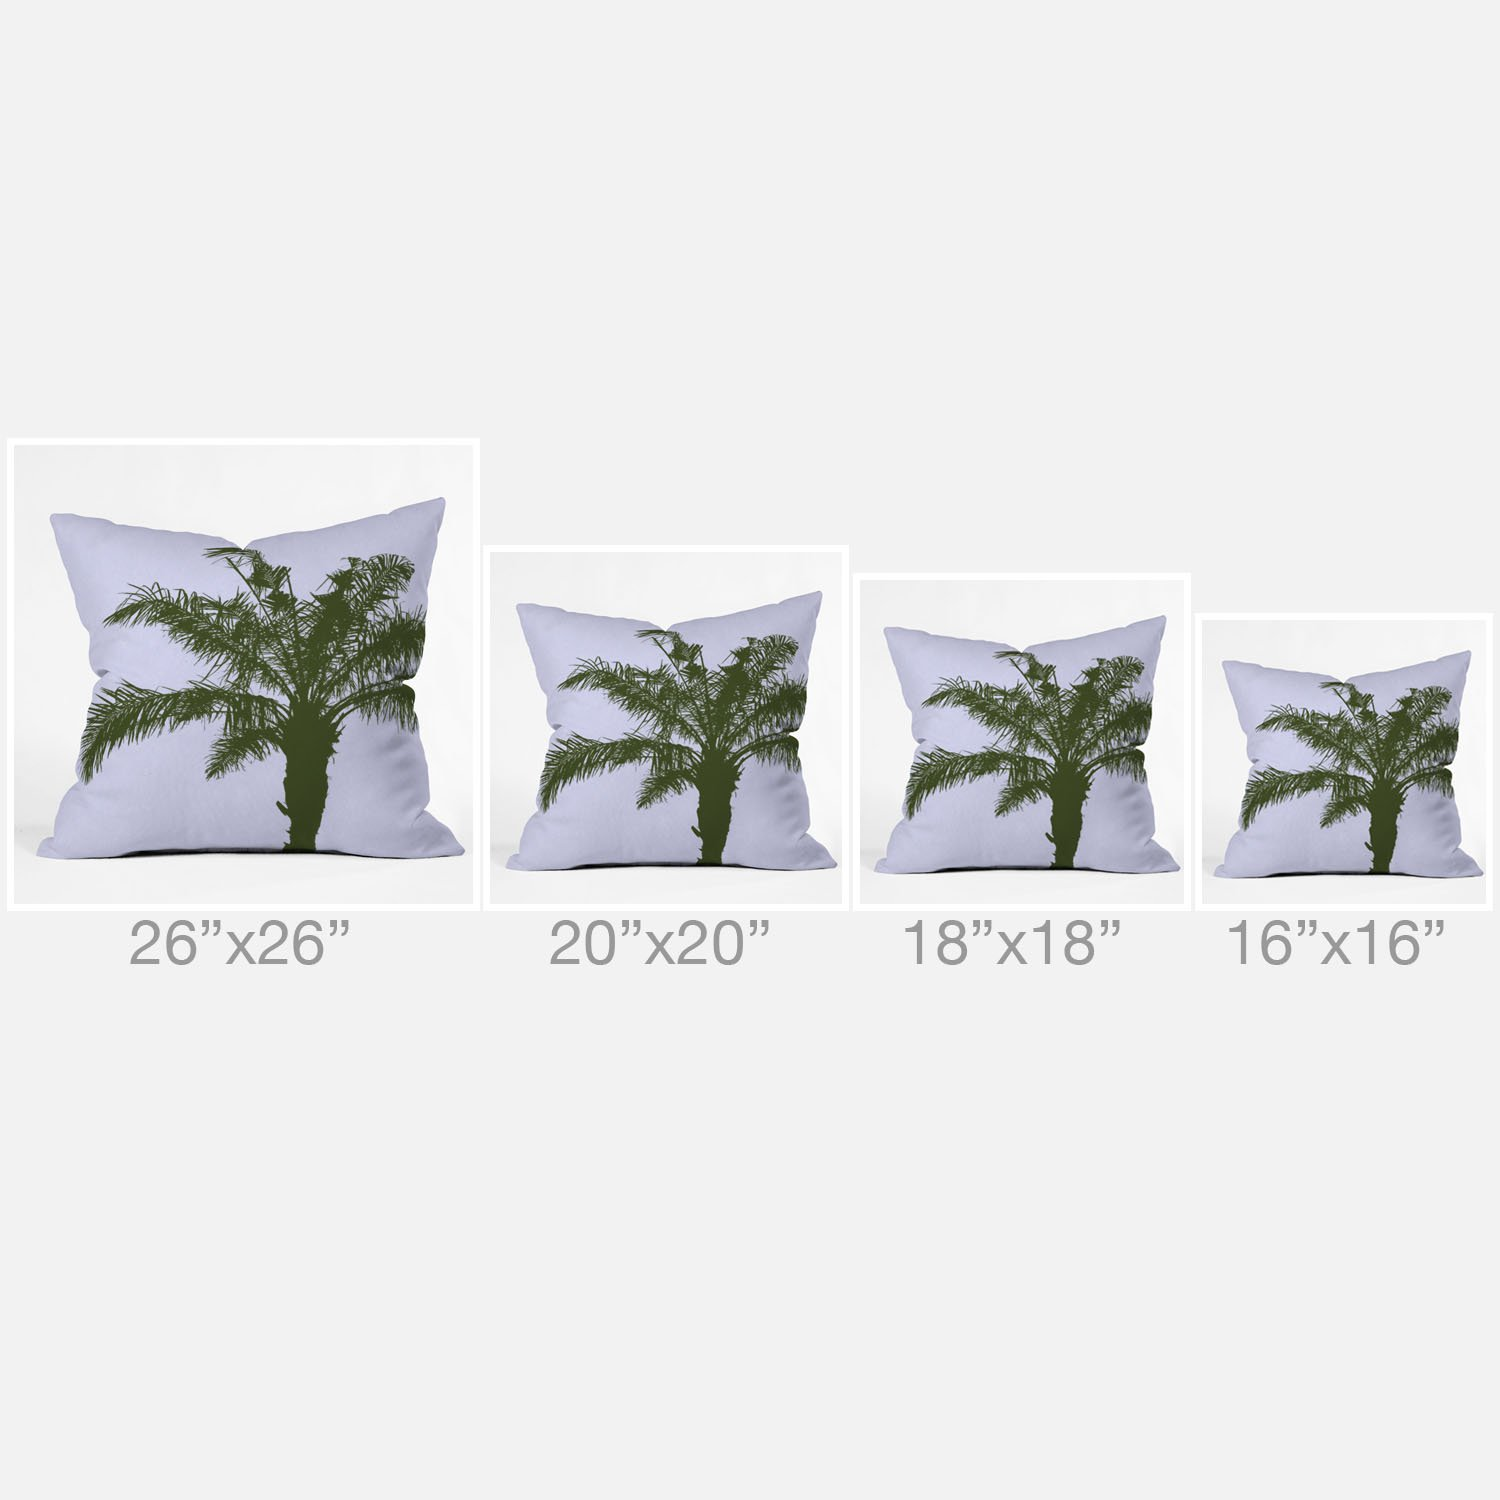 LG 15295-othrp20 20 x 20 Deny Designs Deny Designs Deb Haugen Olive Palm Outdoor Throw Pillow